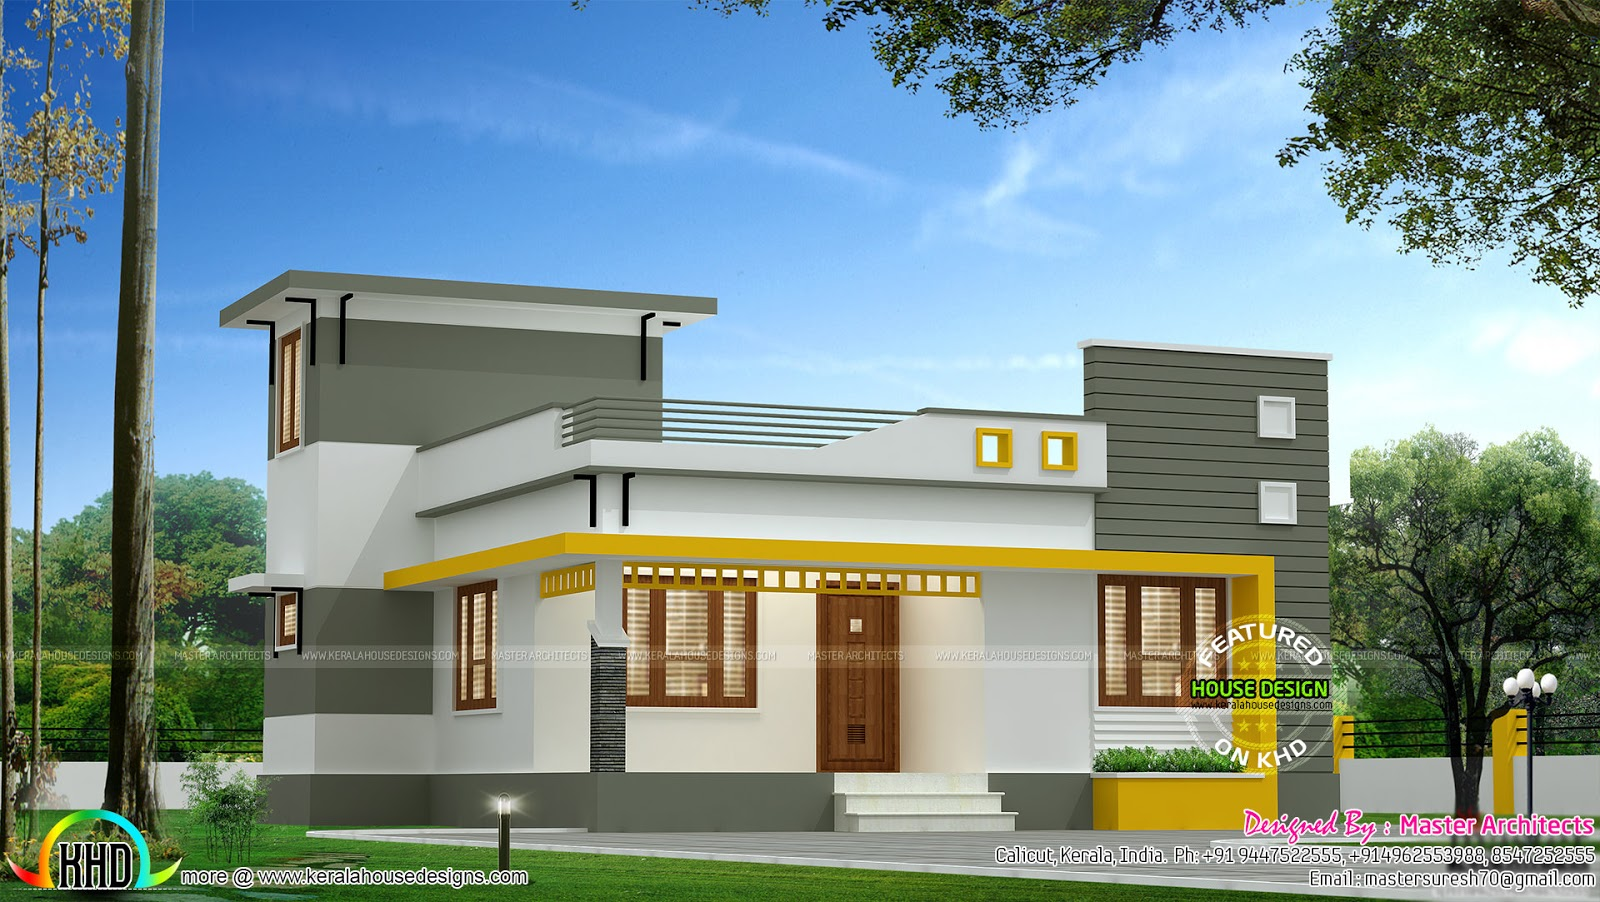 3 bedroom single floor modern architecture home kerala for Modern single floor house designs